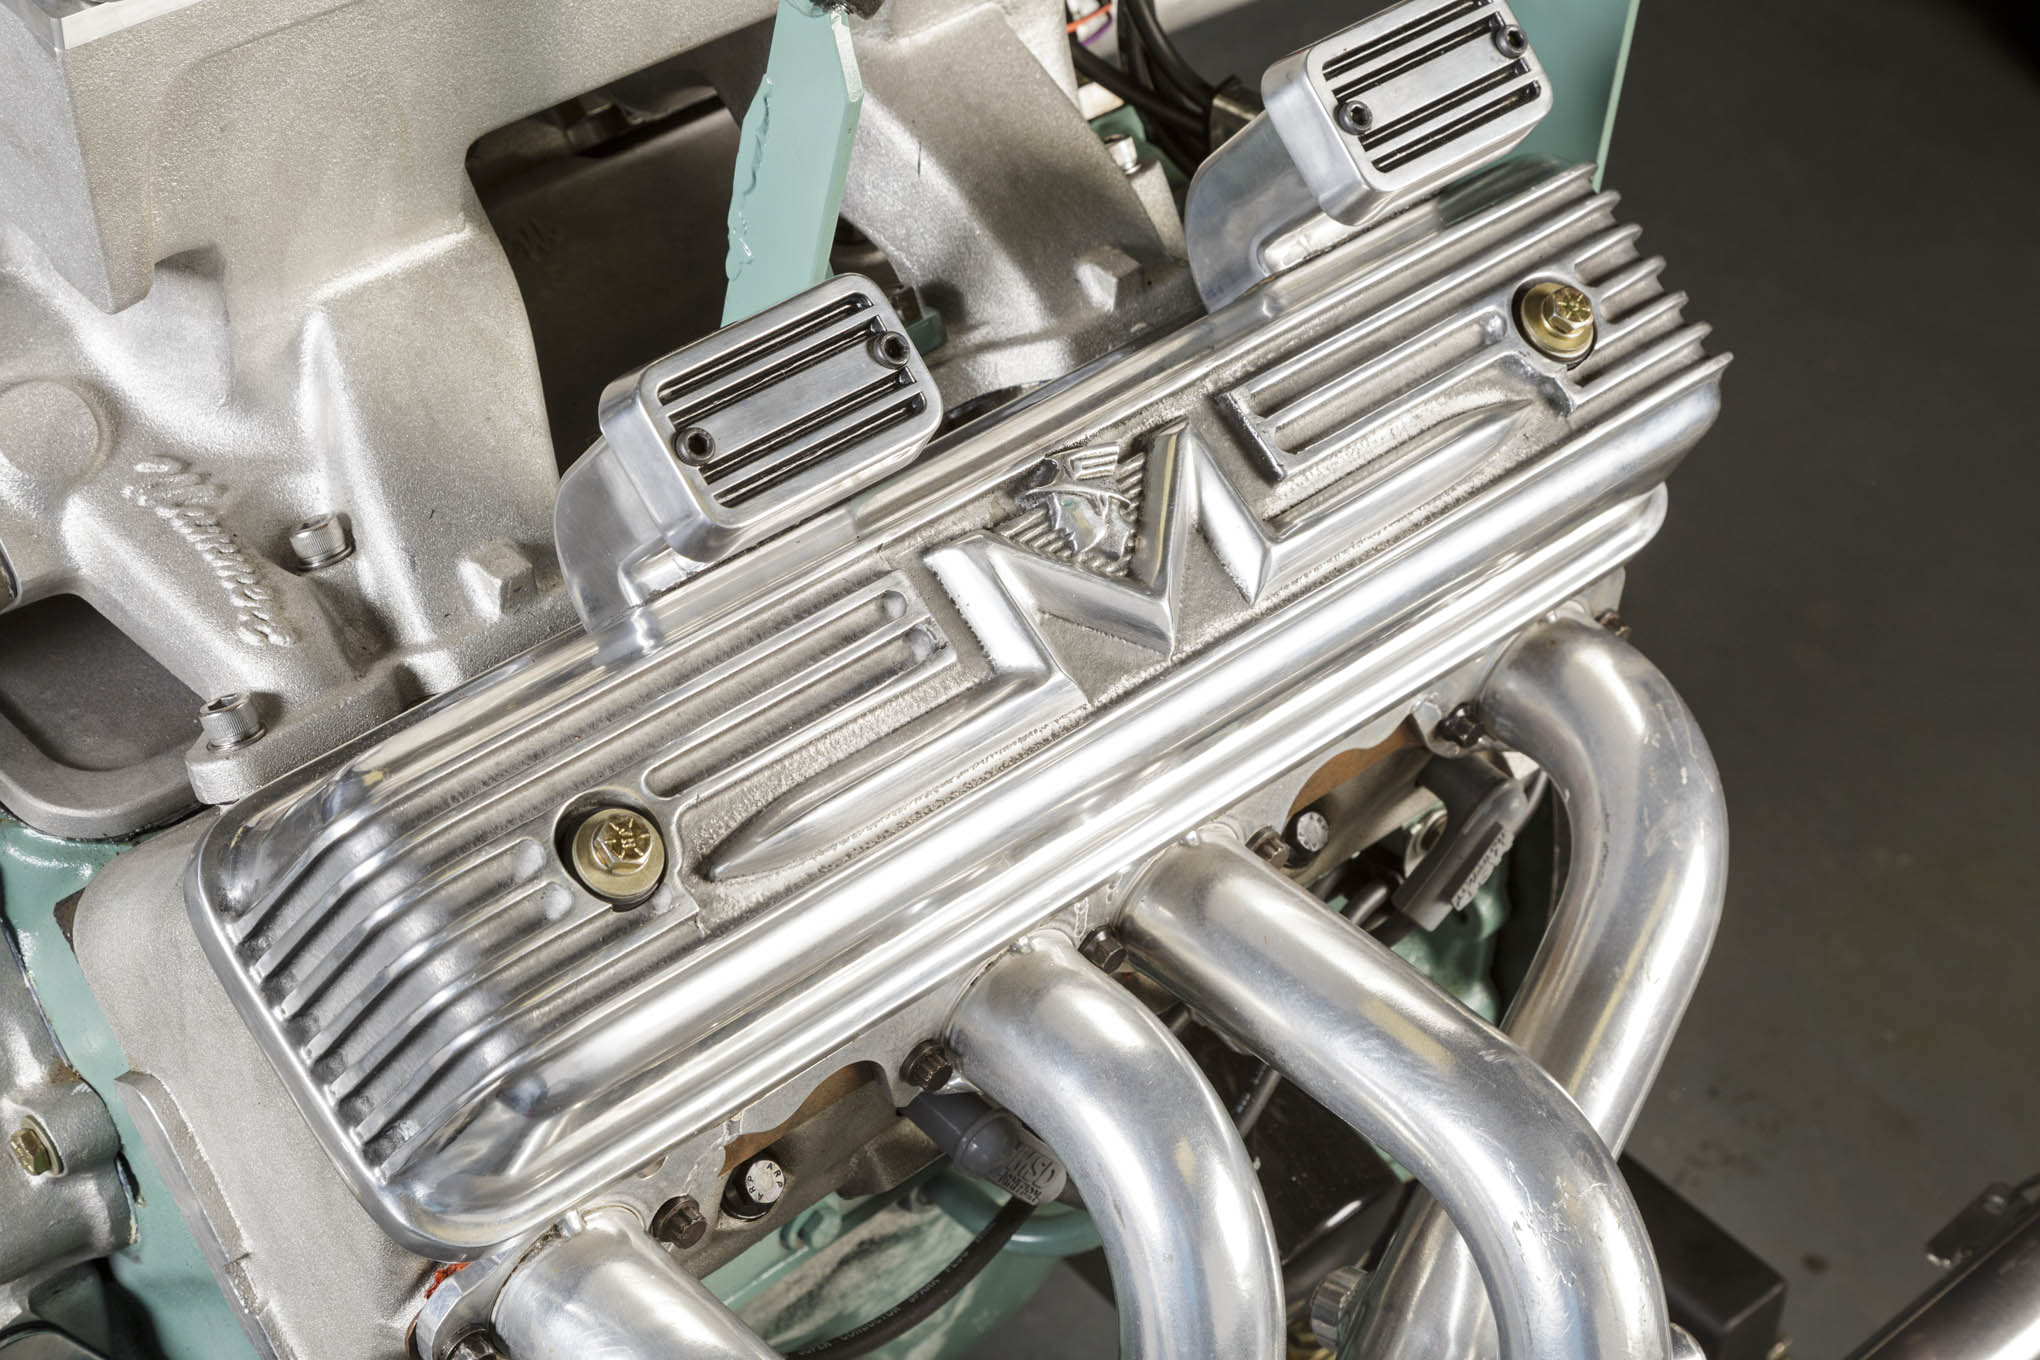 This gorgeous set of Mercury valve covers really set Eaton's motor apart form other Y engines in competition. They are the handiwork of Australian manufacturer, Y bloke. Under those valvecovers are shaft-mounted Mummert rockers, working off of an Isky camshaft. Duration for the cam specs in at 256/260 degrees at .050-inches and the lobe separation angle is an extremely tight 102 degrees. The tight LSA helps compress the power and torque bands into the competition's scoring range for maximum points.